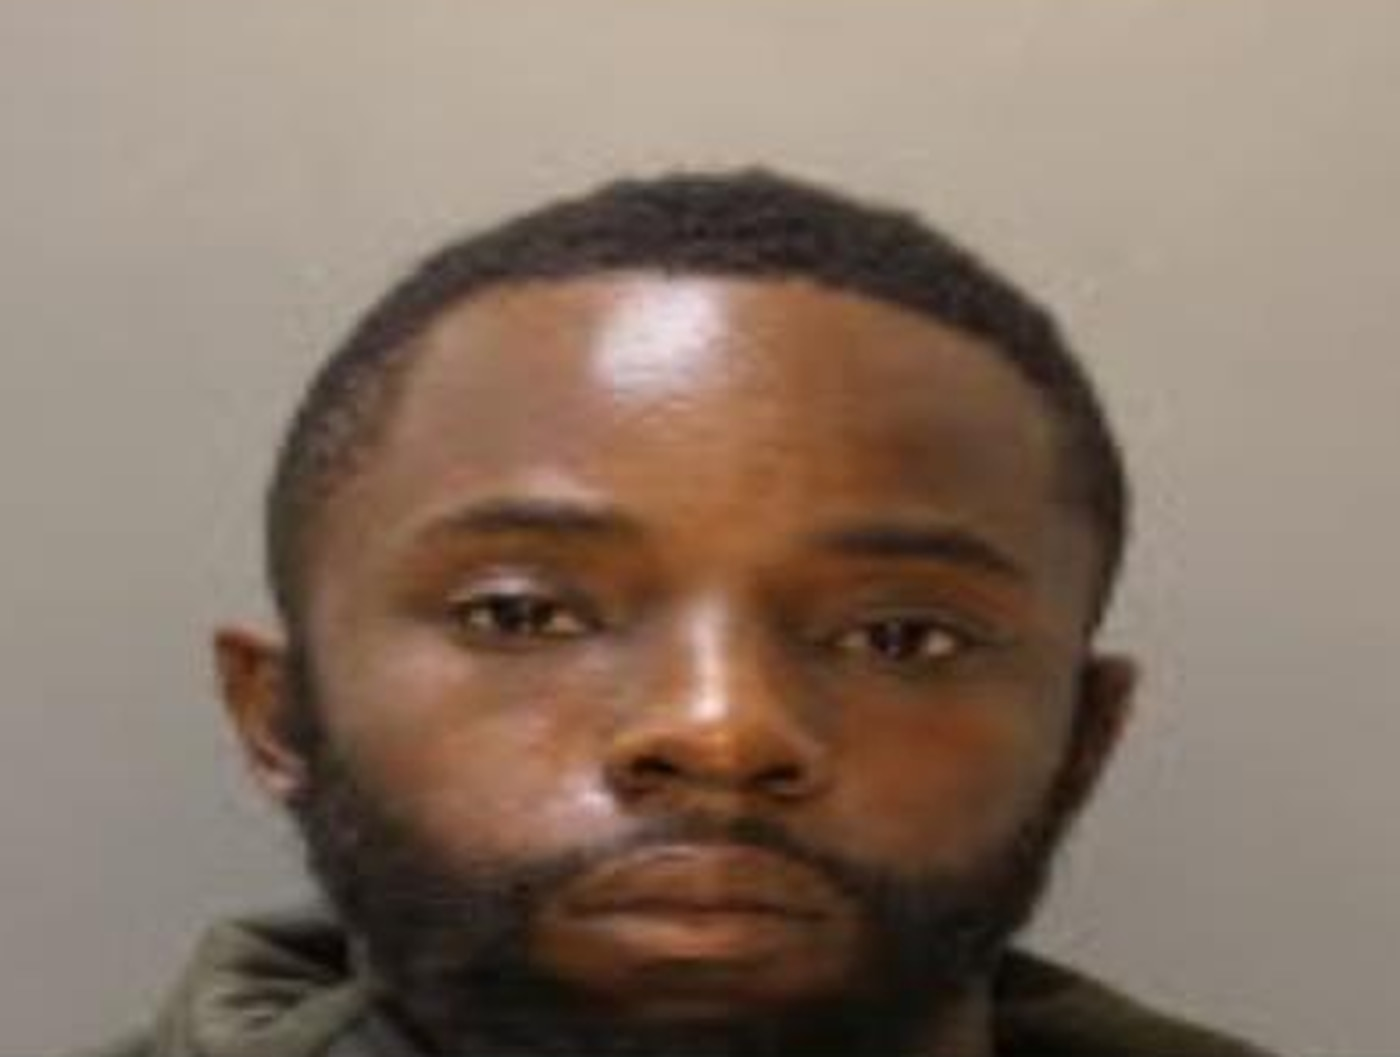 Police Seeking 33 Year Old Man In Shooting Death Of New Mother